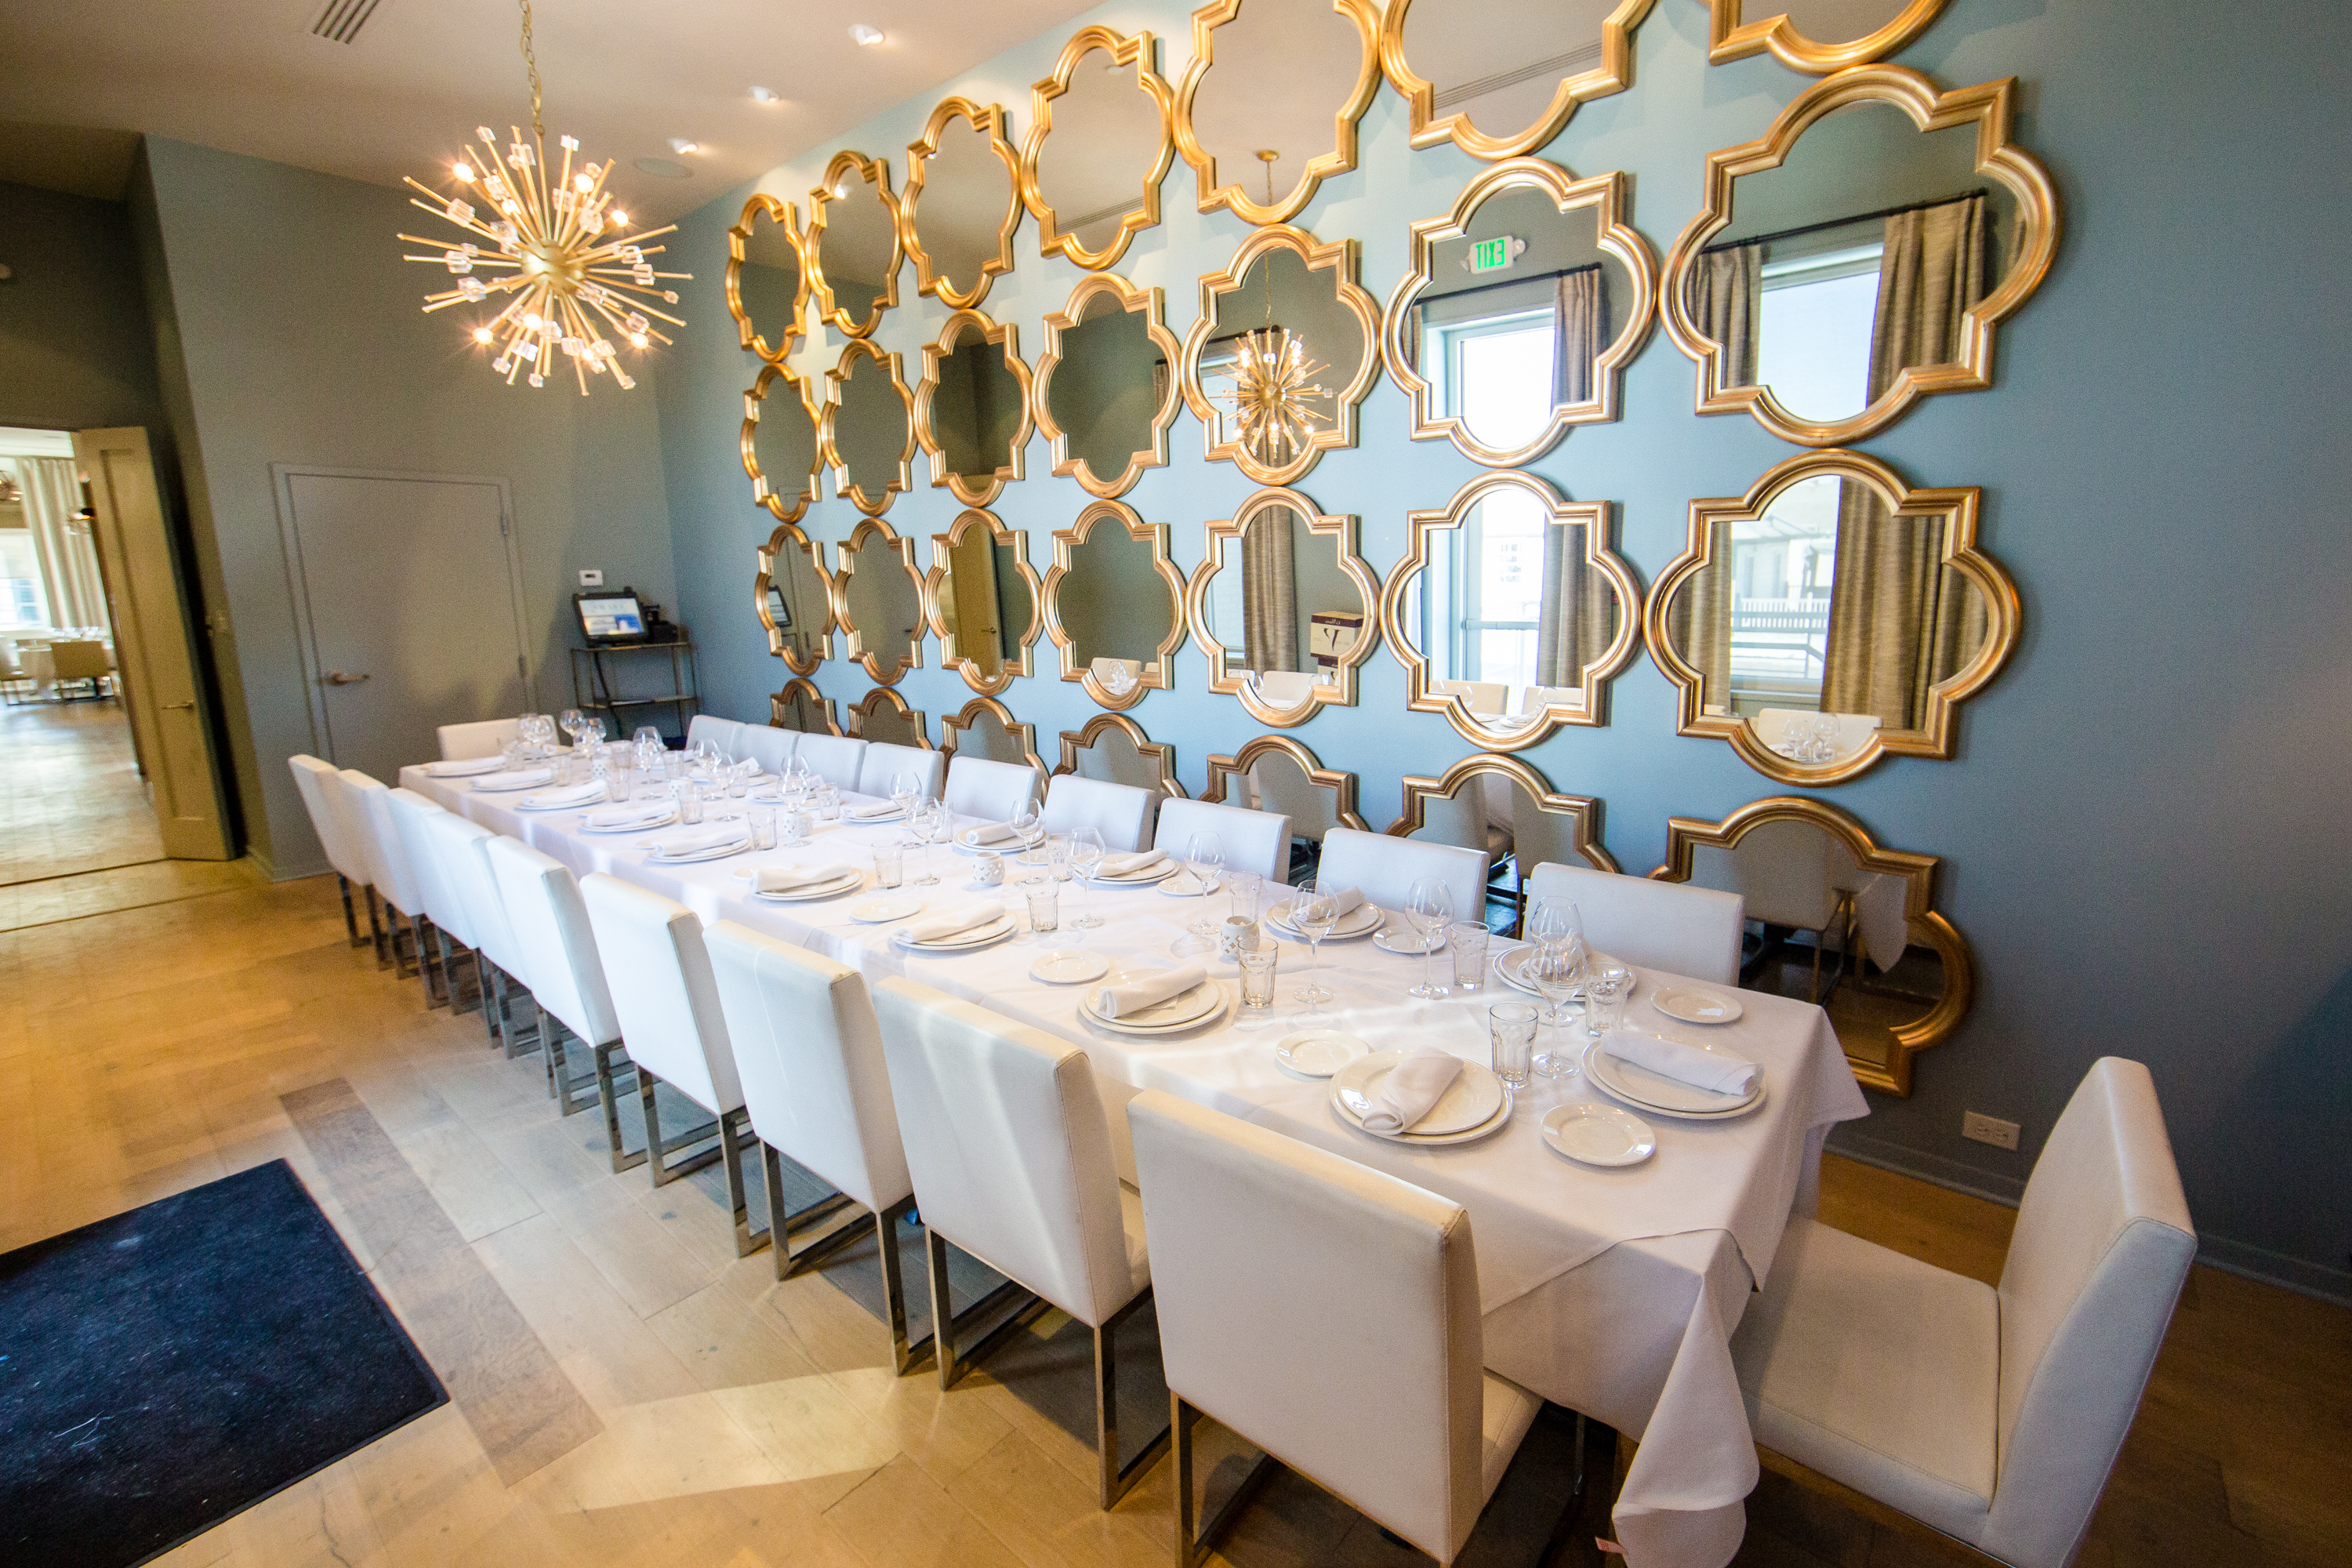 The private dining room at Shaya, home of the Lebanese lamb and beef tartare variation, kibbeh nayah.